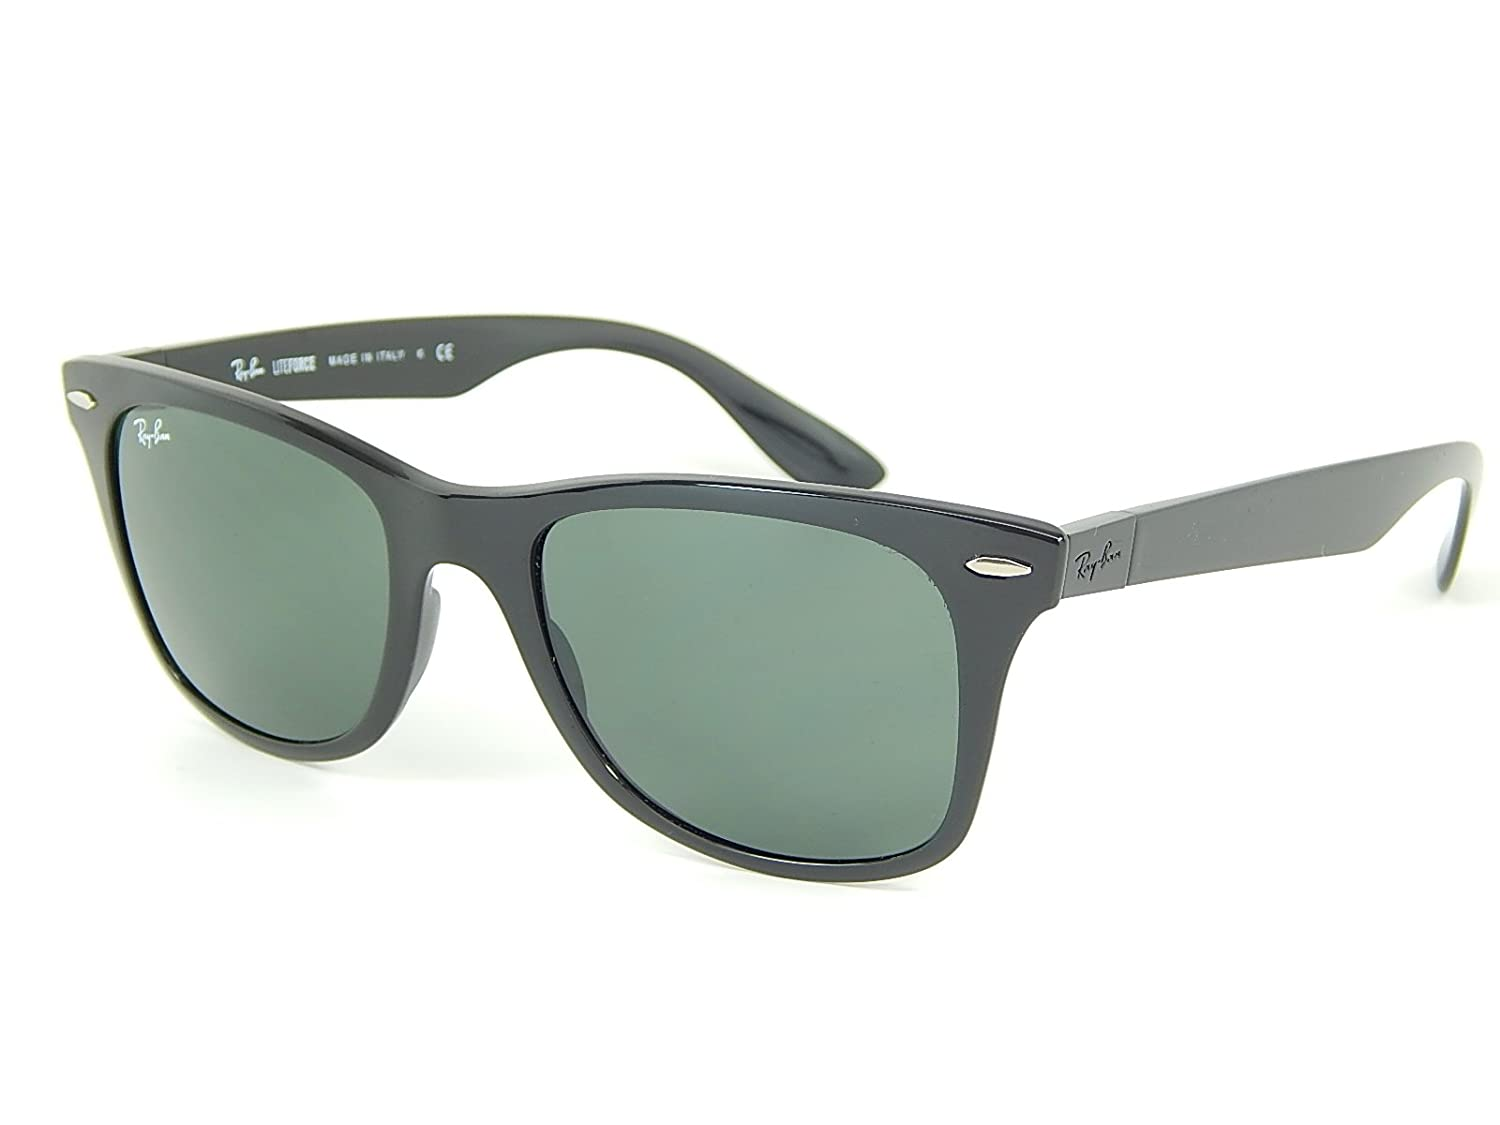 74126ae33ff Ray Ban Liteforce RB4195 601 71 Black Green Classic 52mm Sunglasses   Amazon.co.uk  Clothing